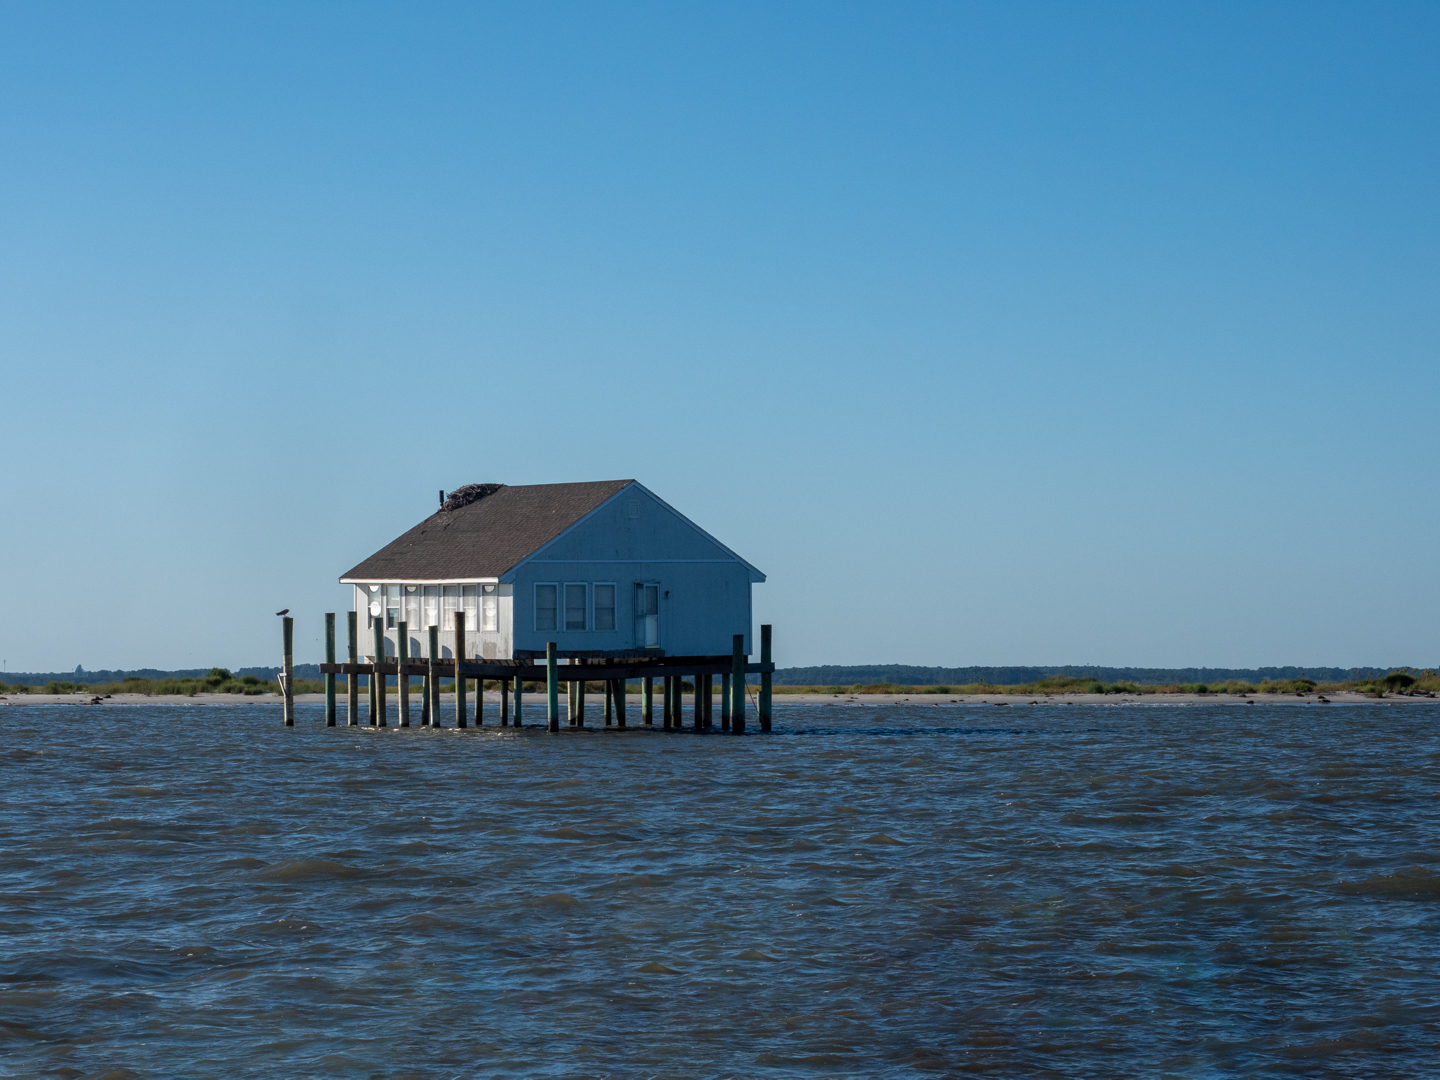 House in the ocean Photo